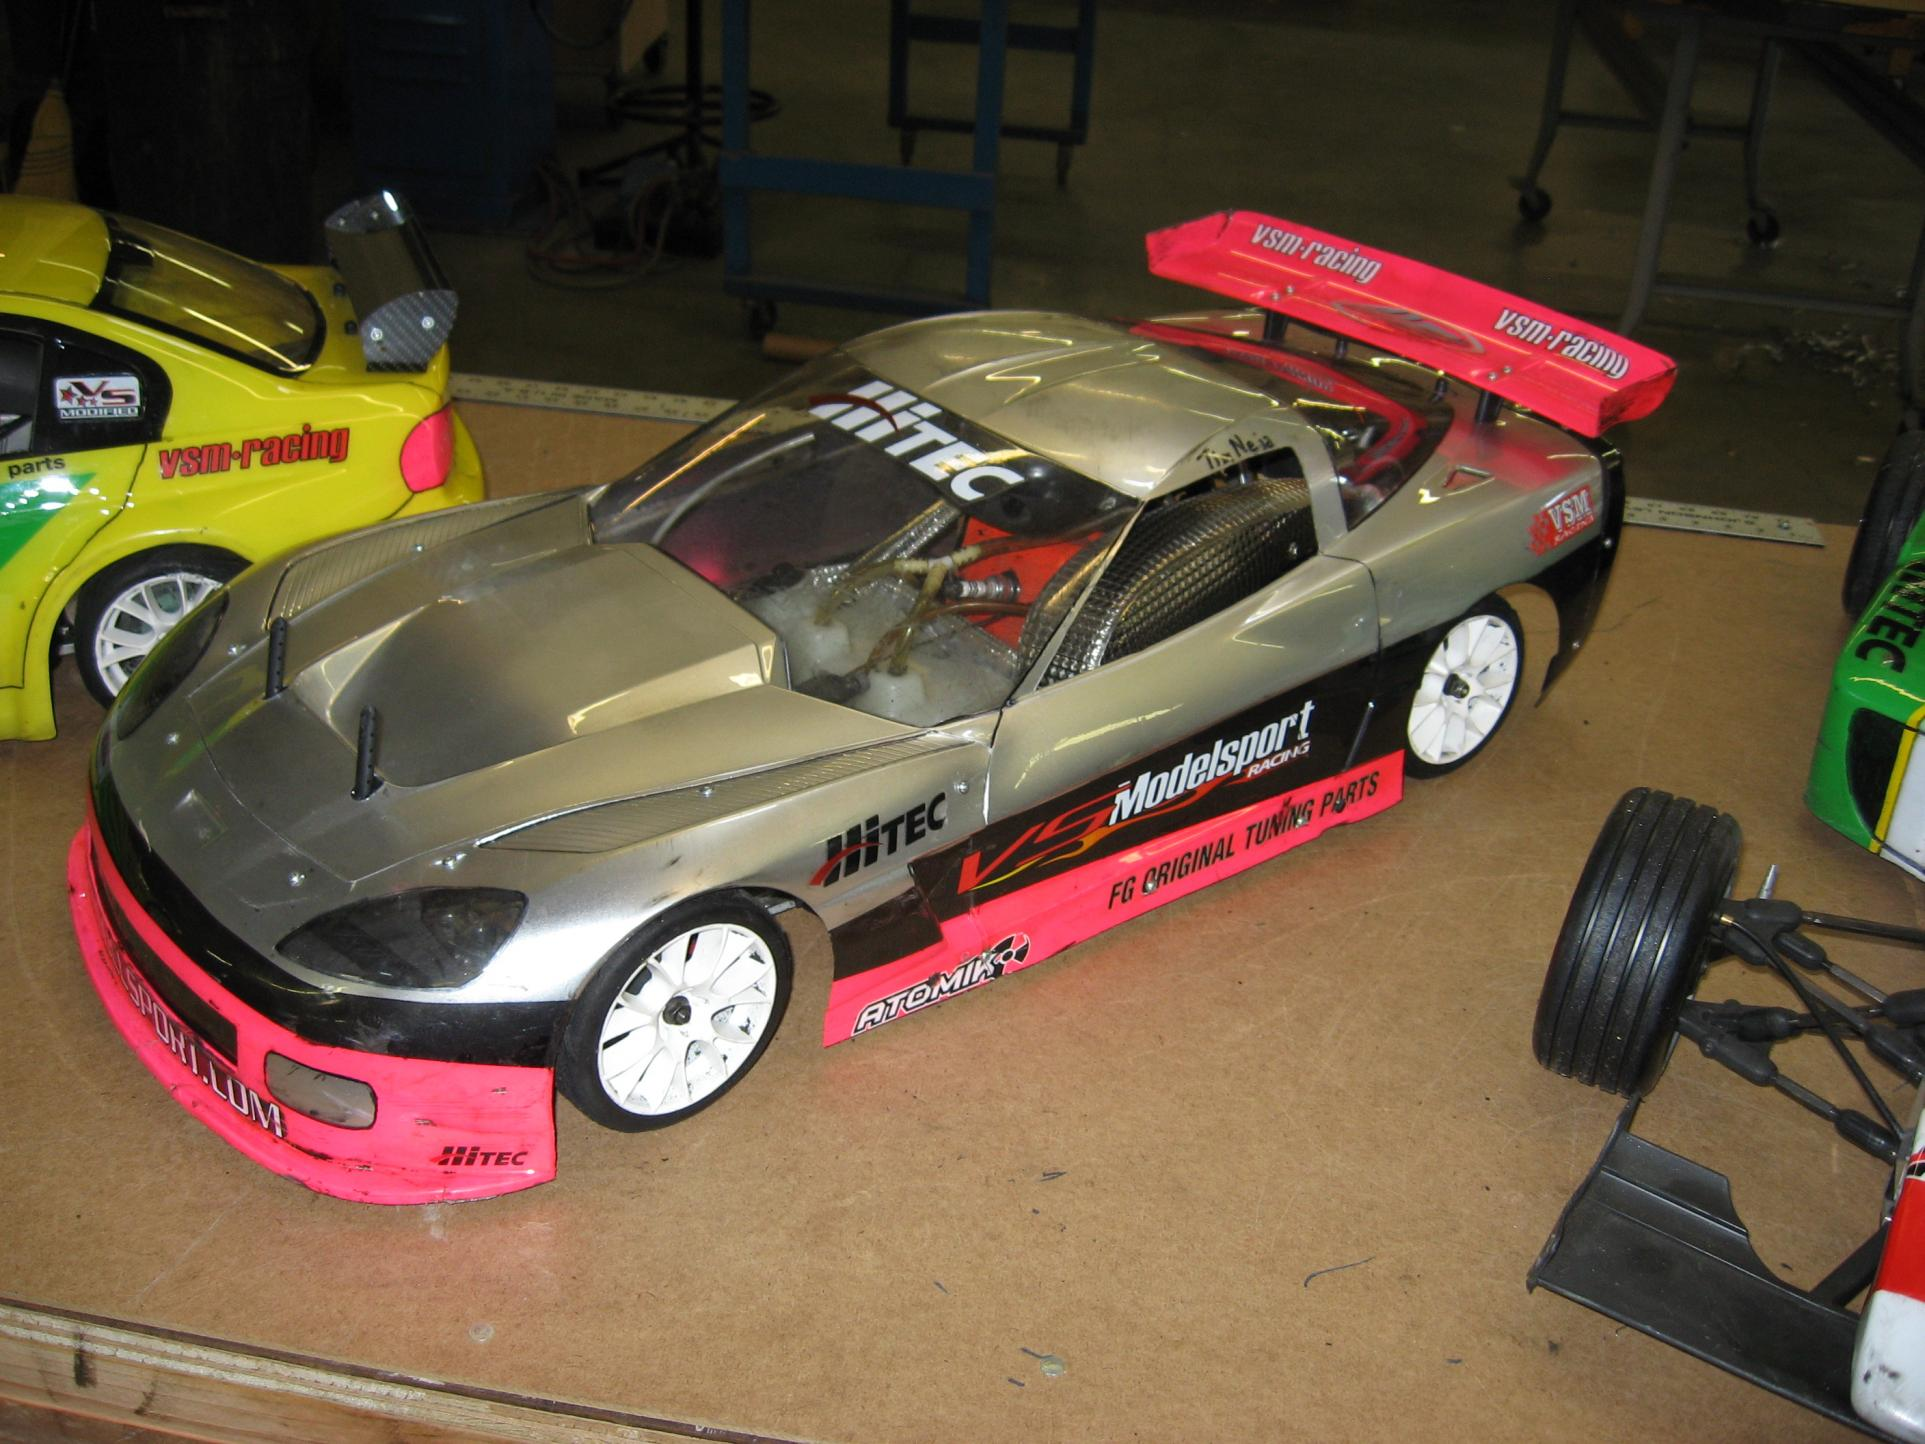 1/5 Scale FG race car for sale!! - R/C Tech Forums